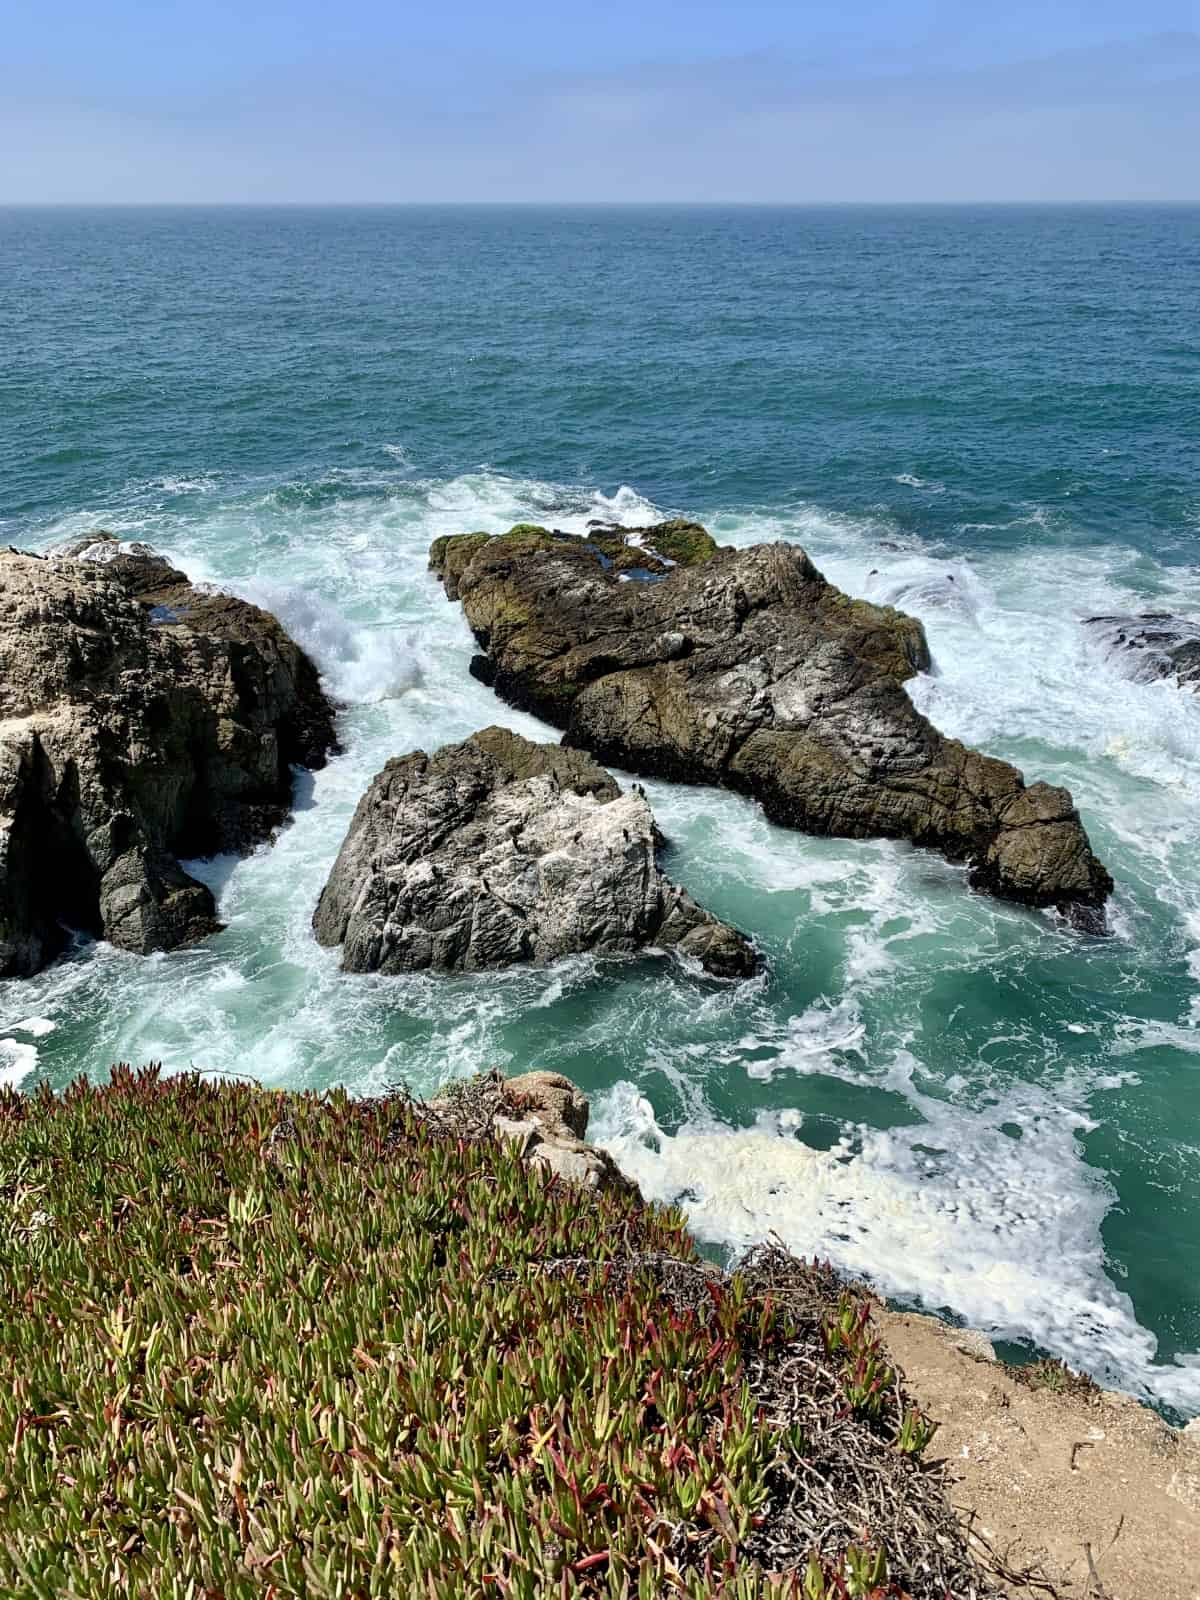 Hiking along the coast is one of the best things to do on the Sonoma Coast, California - where to eat in Sonoma Coast